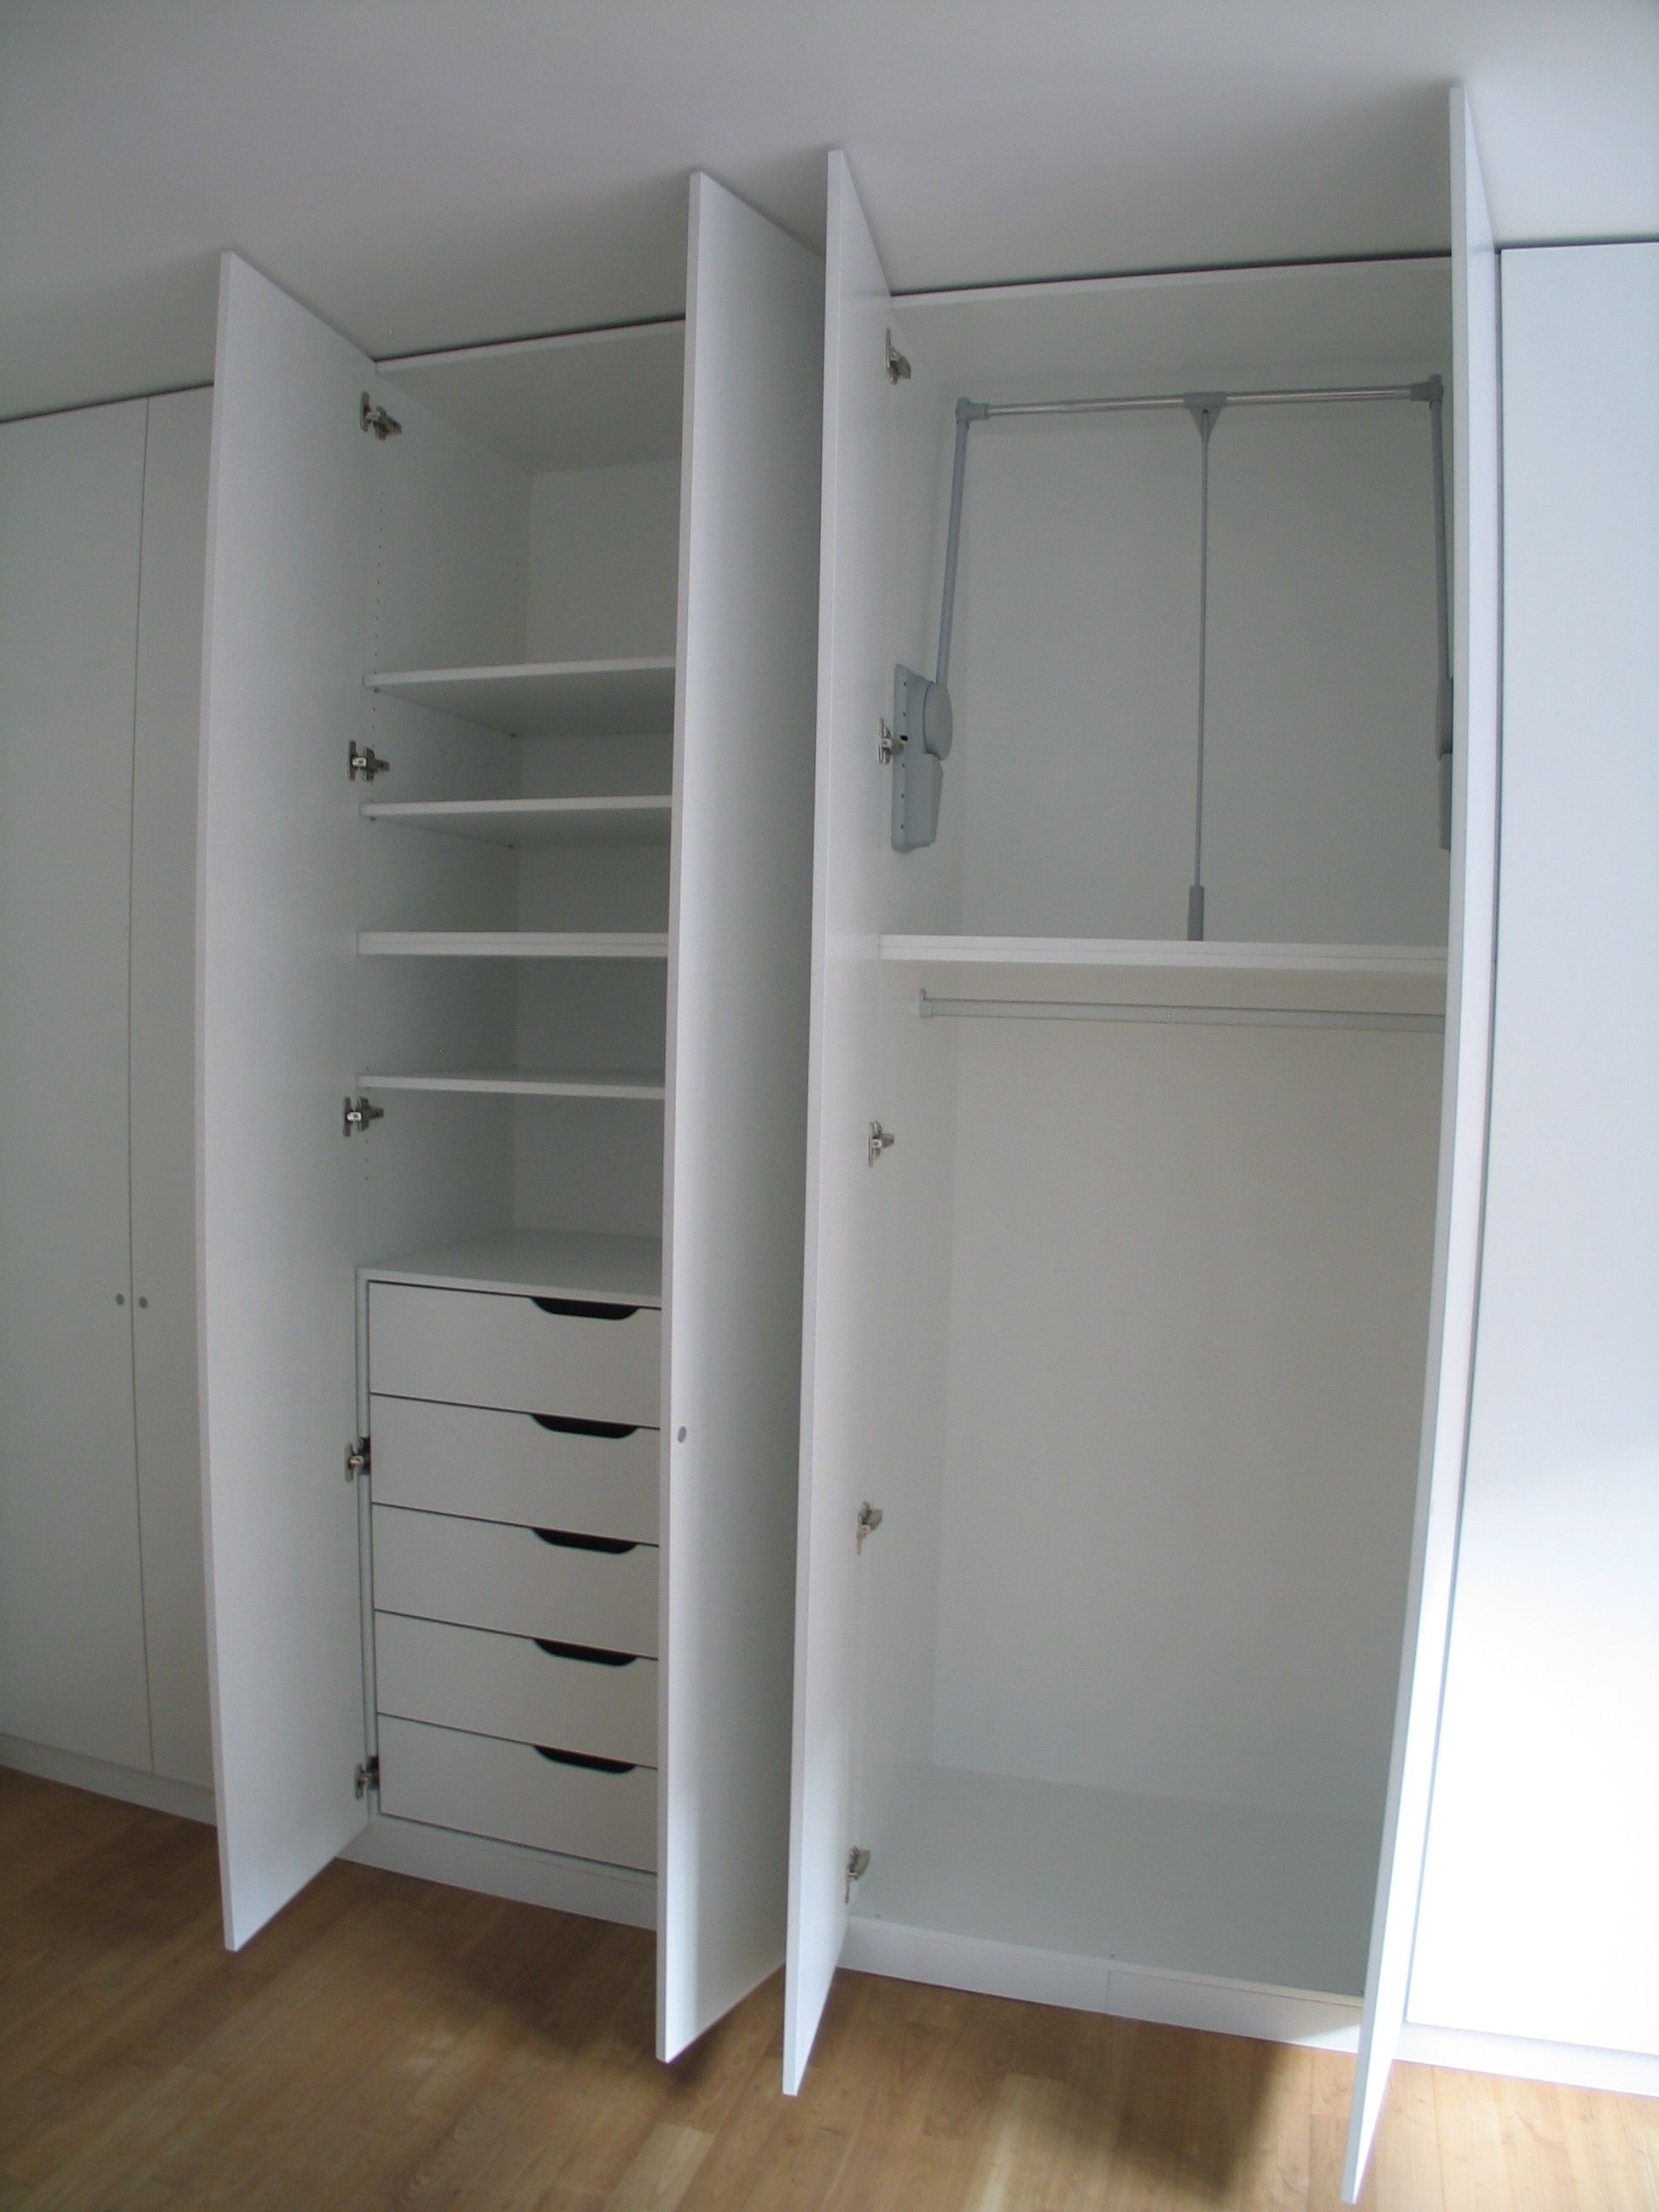 Wardrobe With Drawers And Shelves With Well Known White Wooden Wardrobe With Drawer And Shelf Also Rectangle White (View 14 of 15)